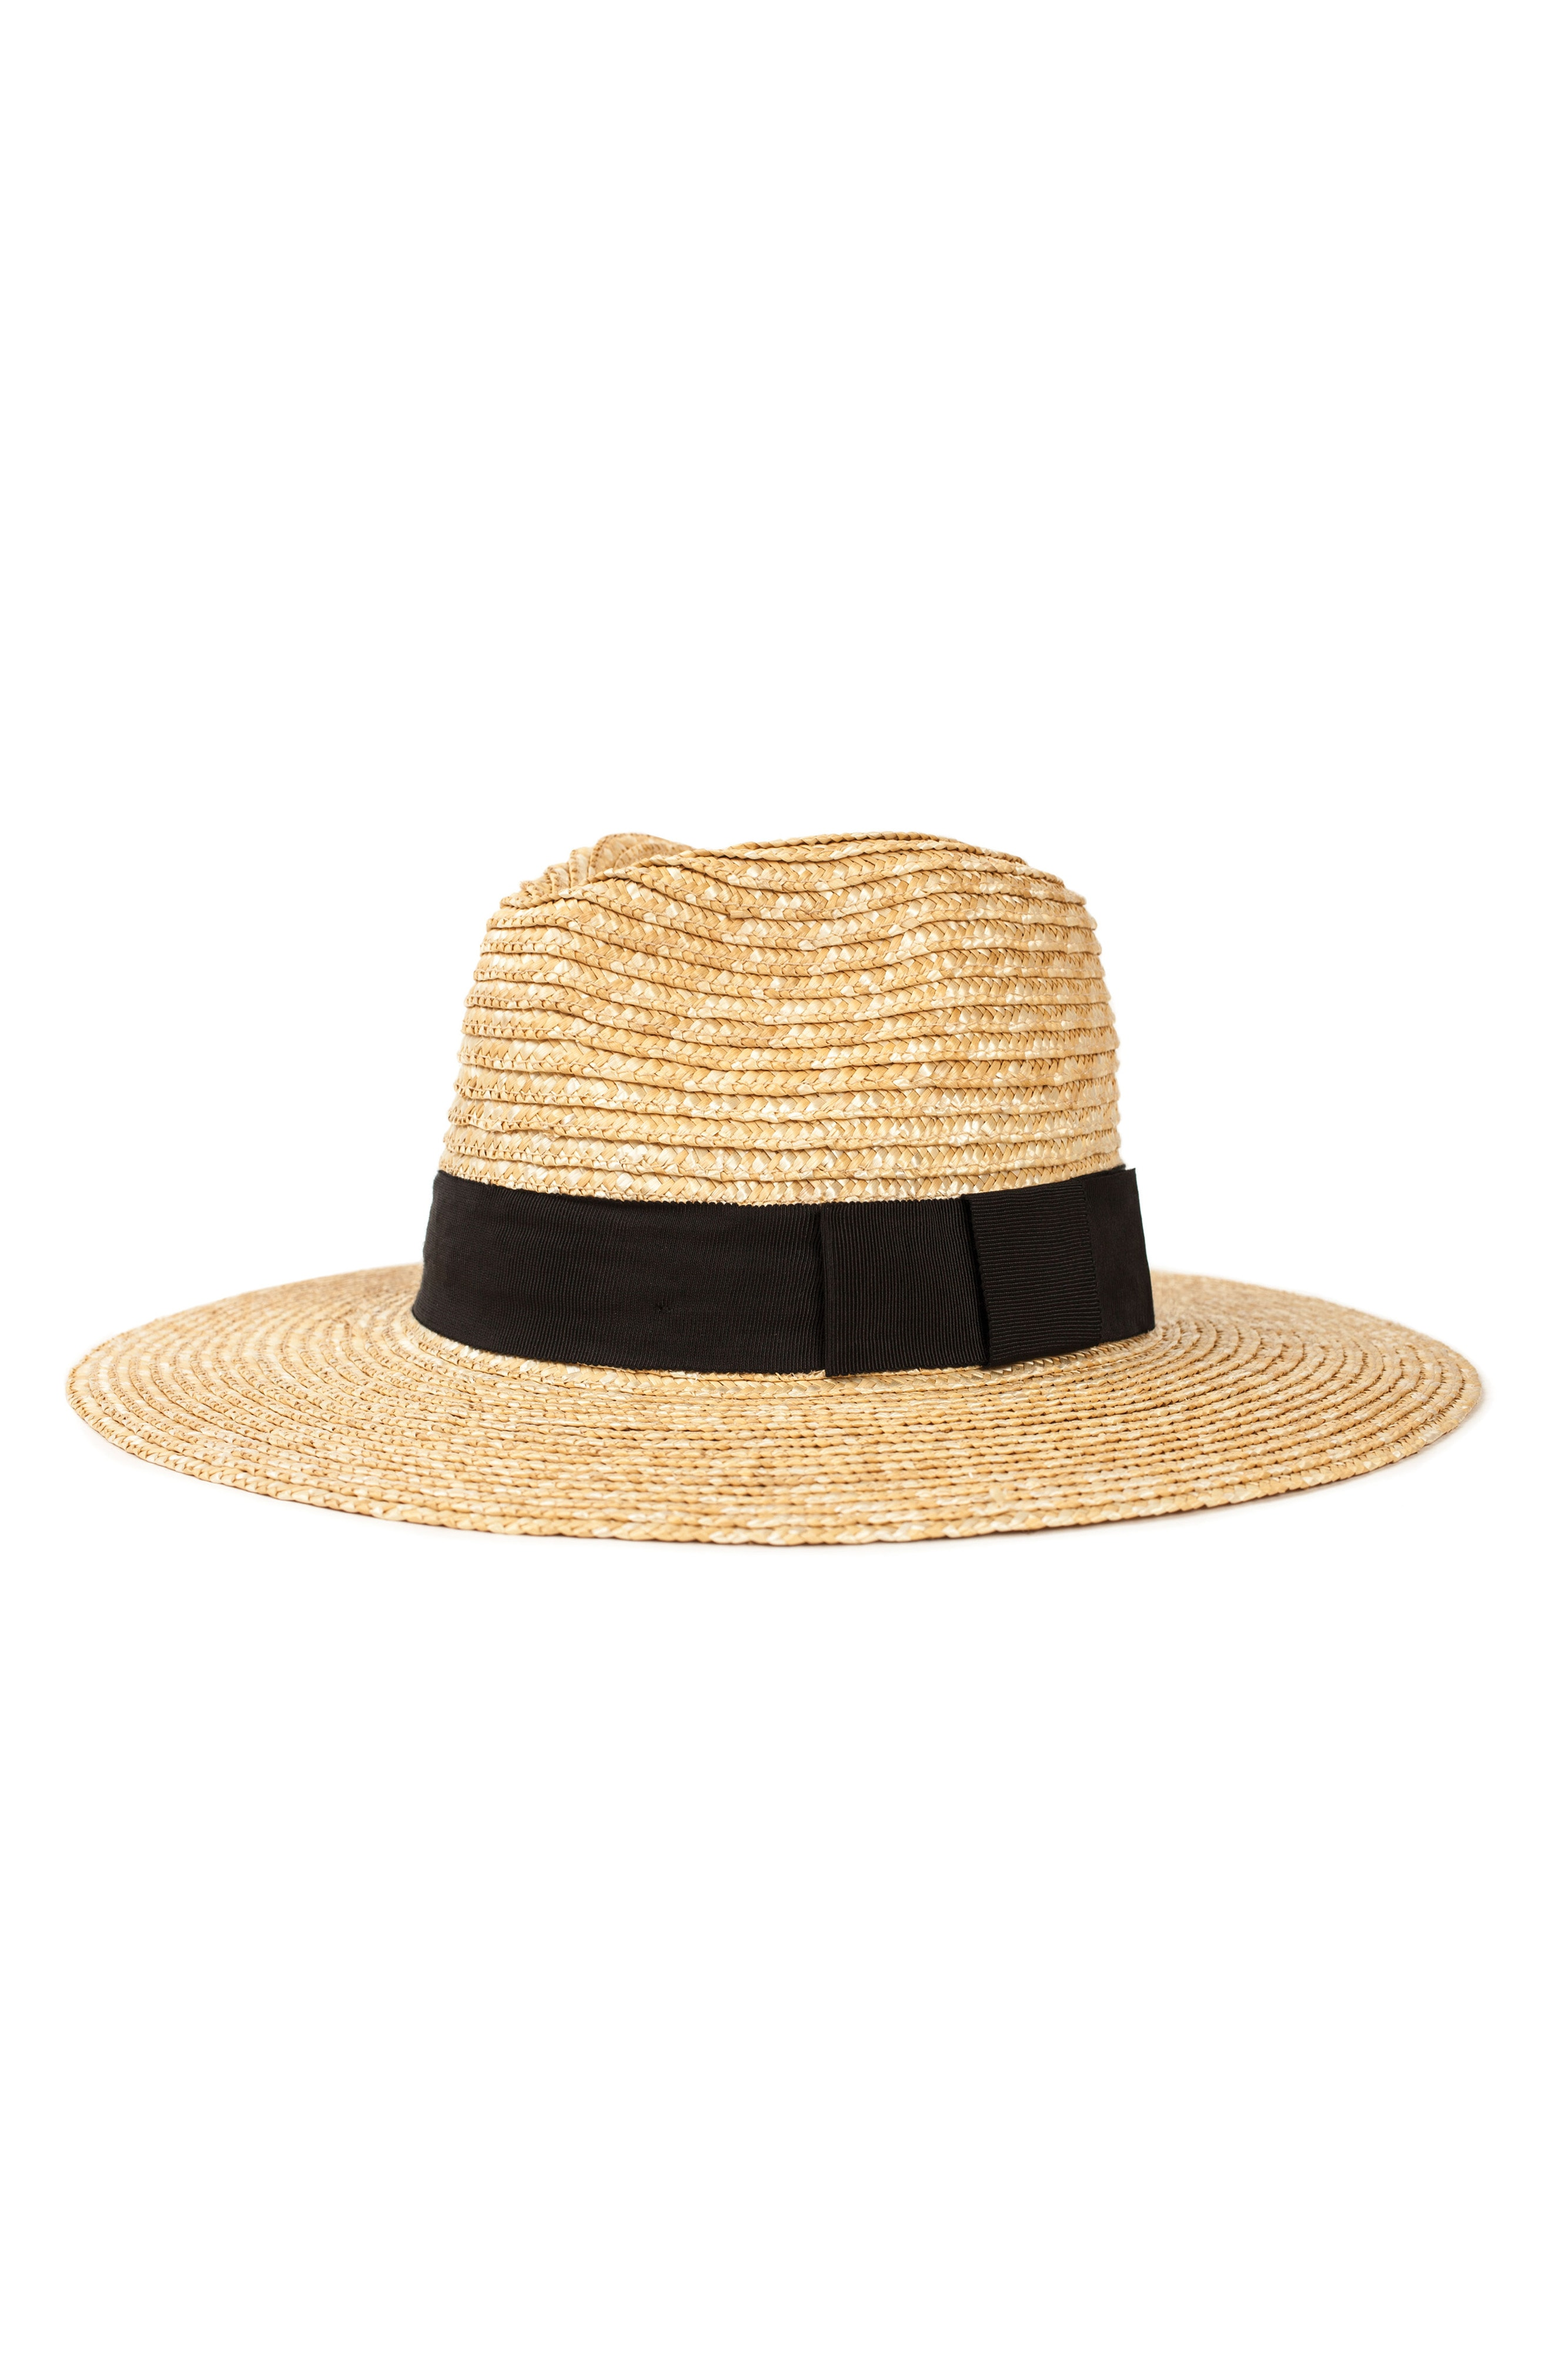 Women's Sun & Straw Hats | Nordstrom